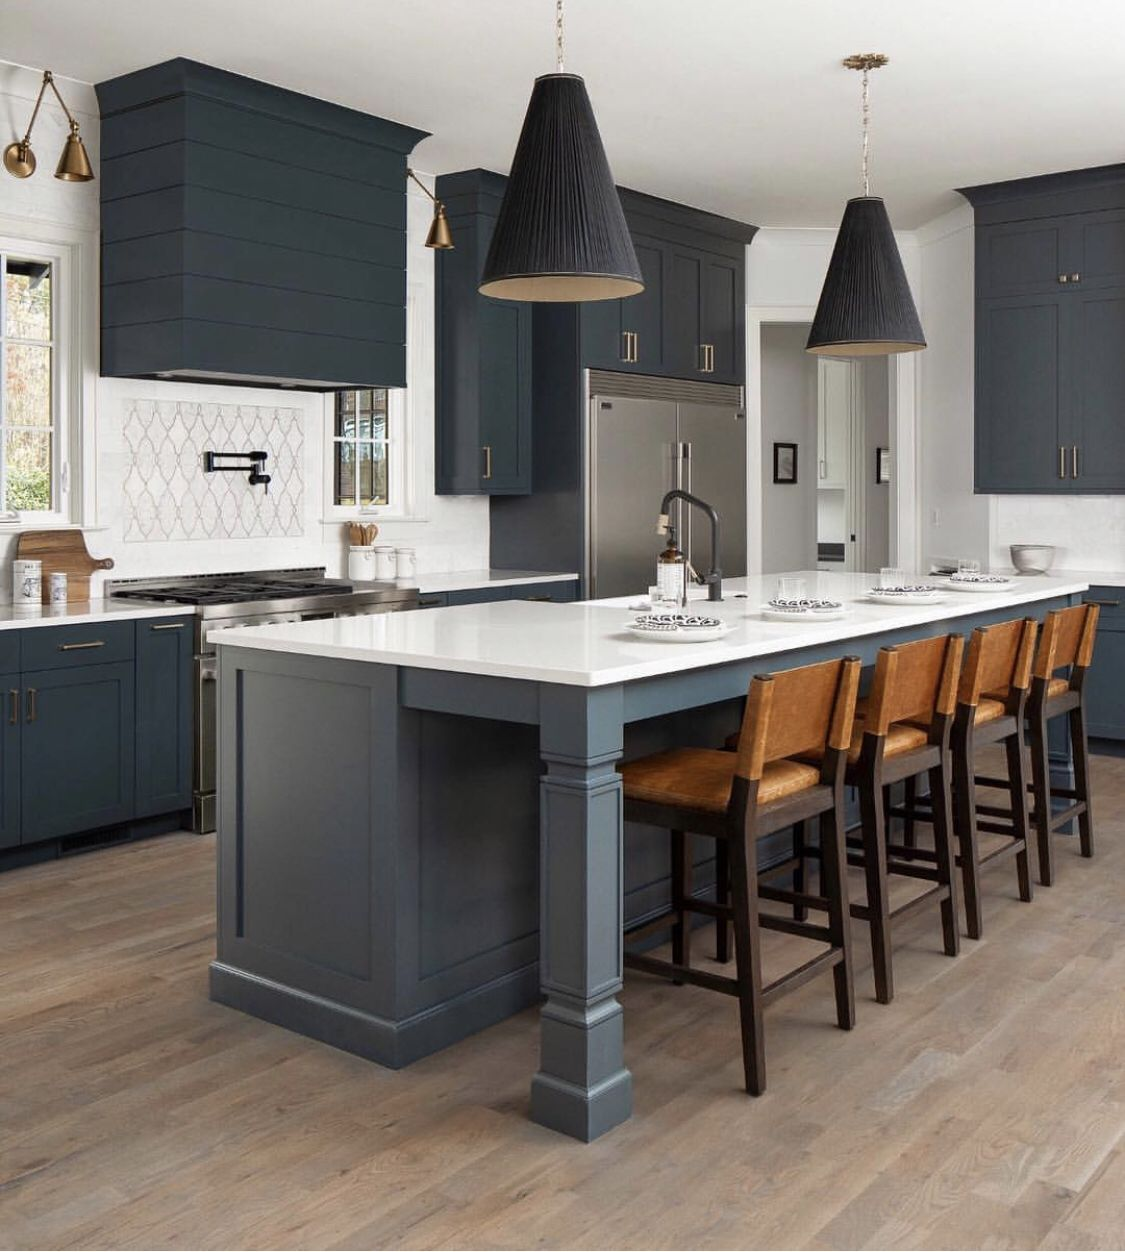 Country Kitchen Yucca Valley: Pin By Rachel Grcar On KITCHEN In 2019